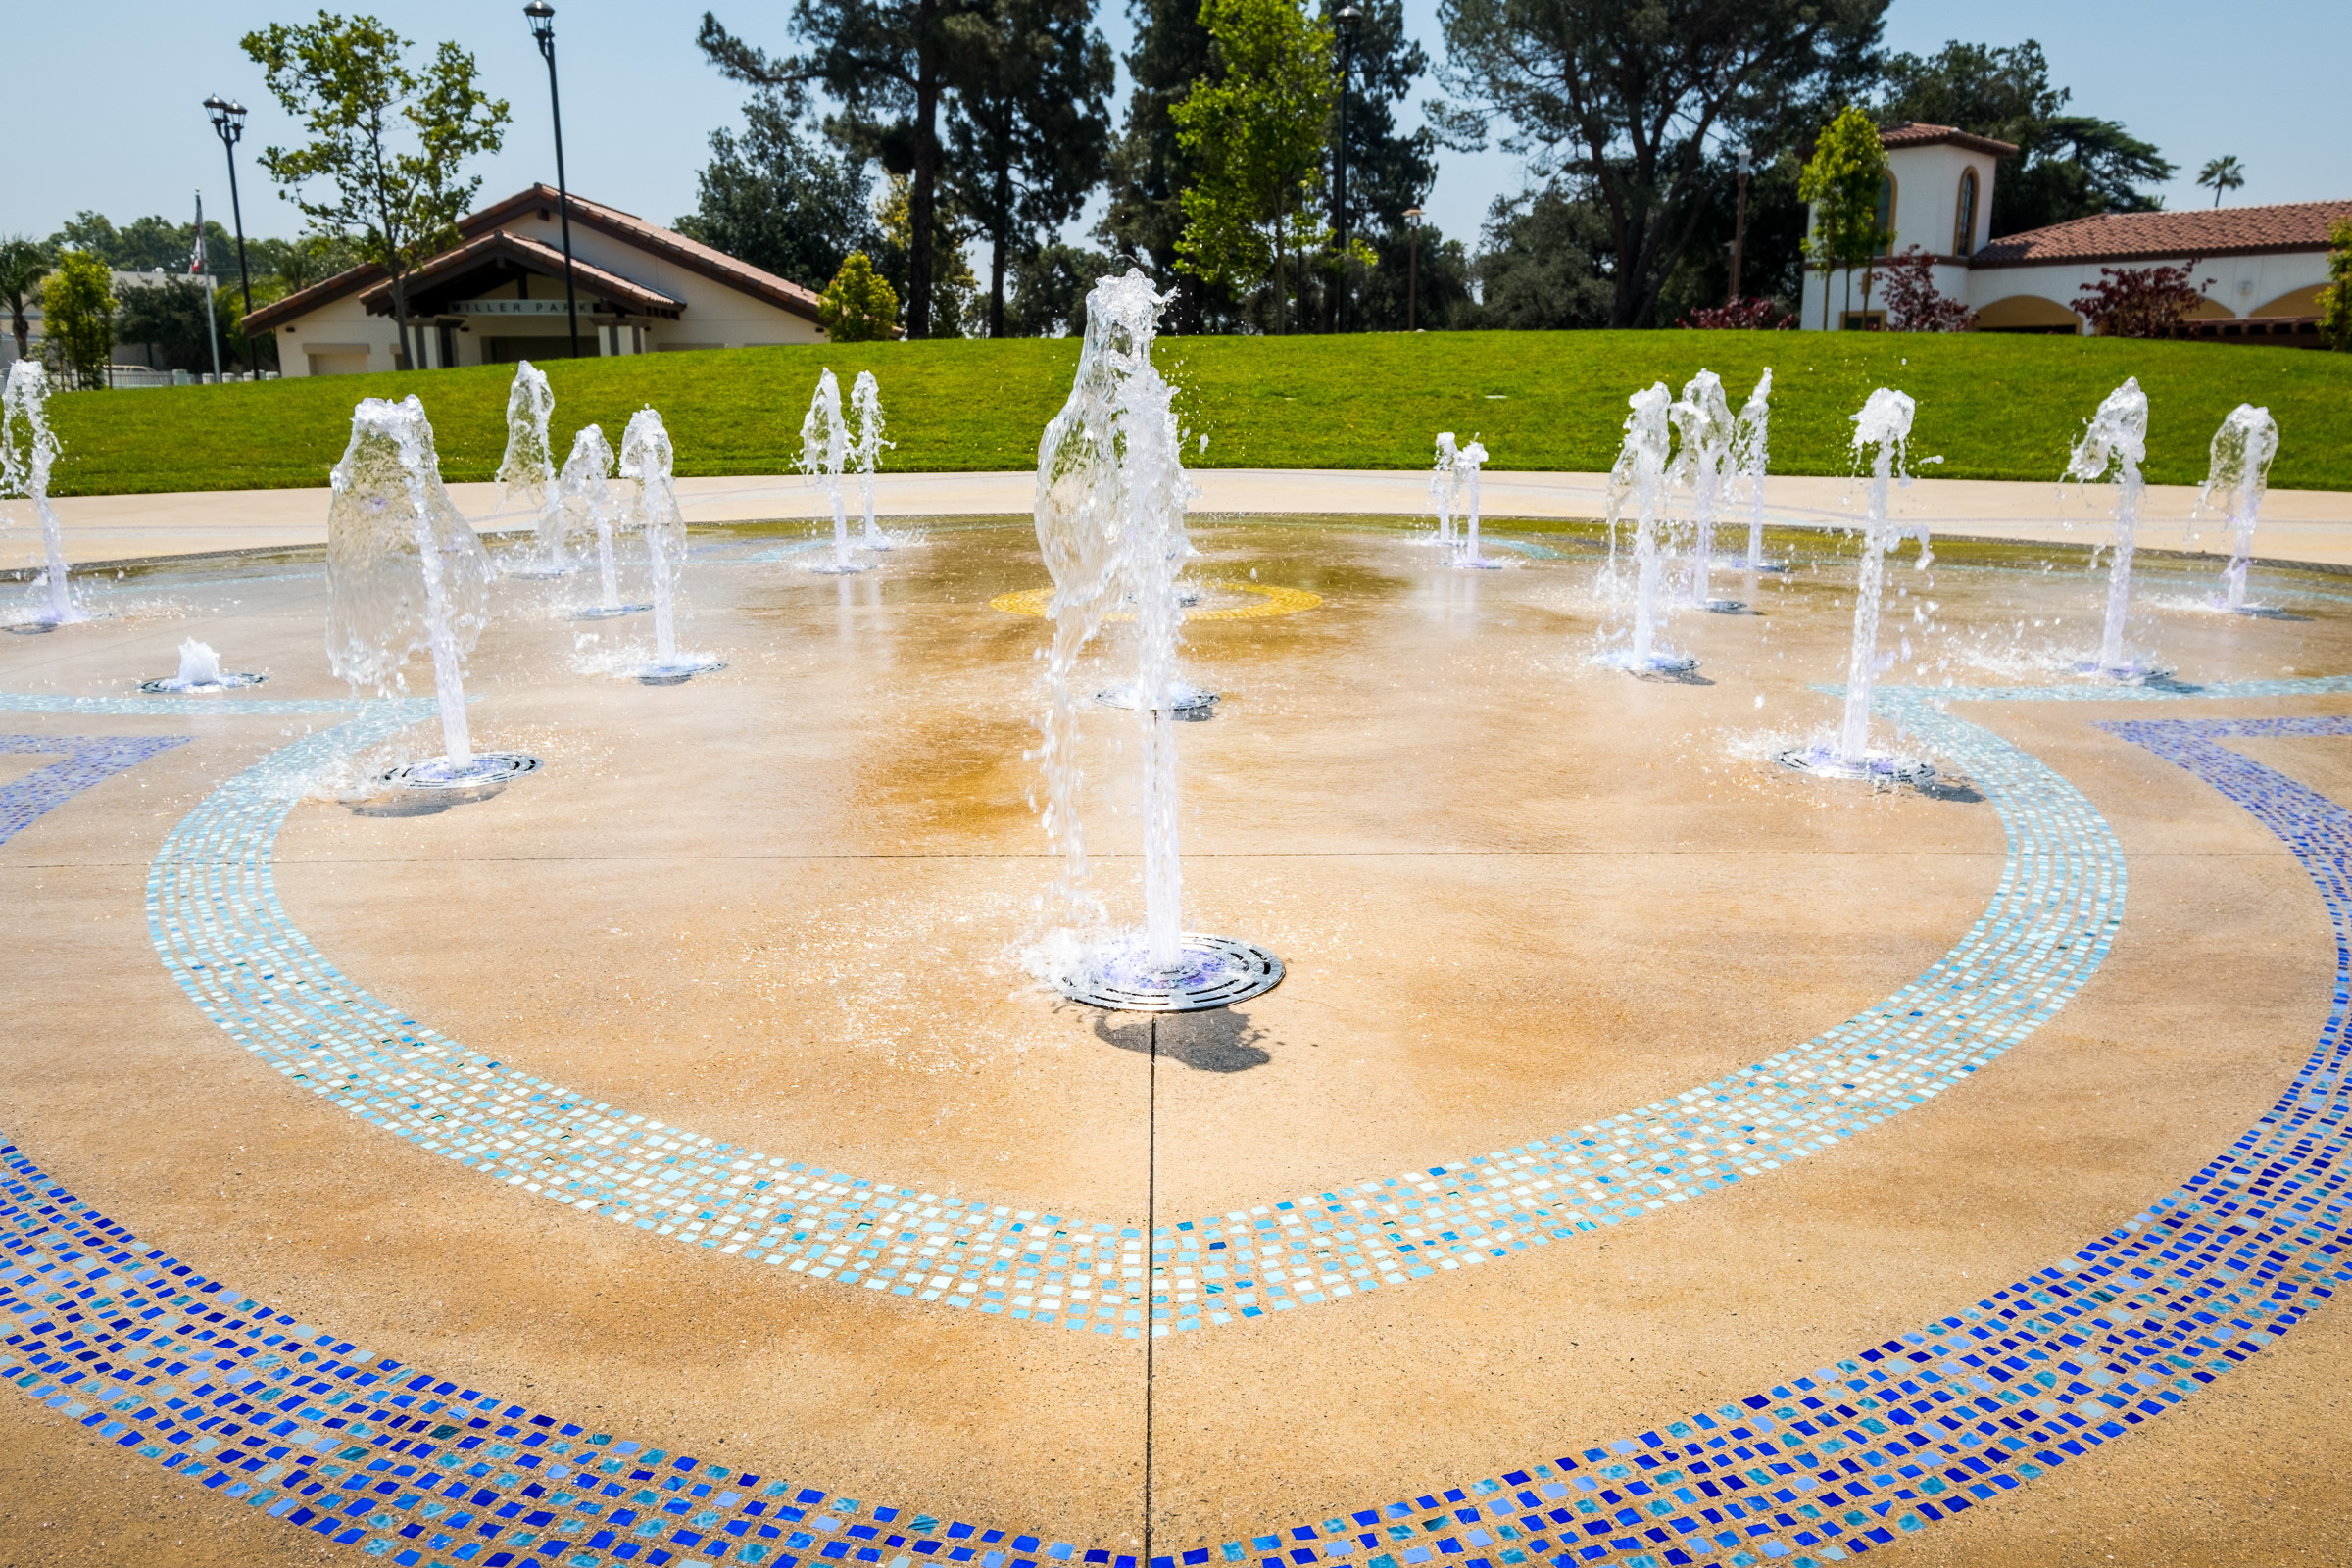 Miller Park Amphitheater - Splash Pad (1 of 6).jpg